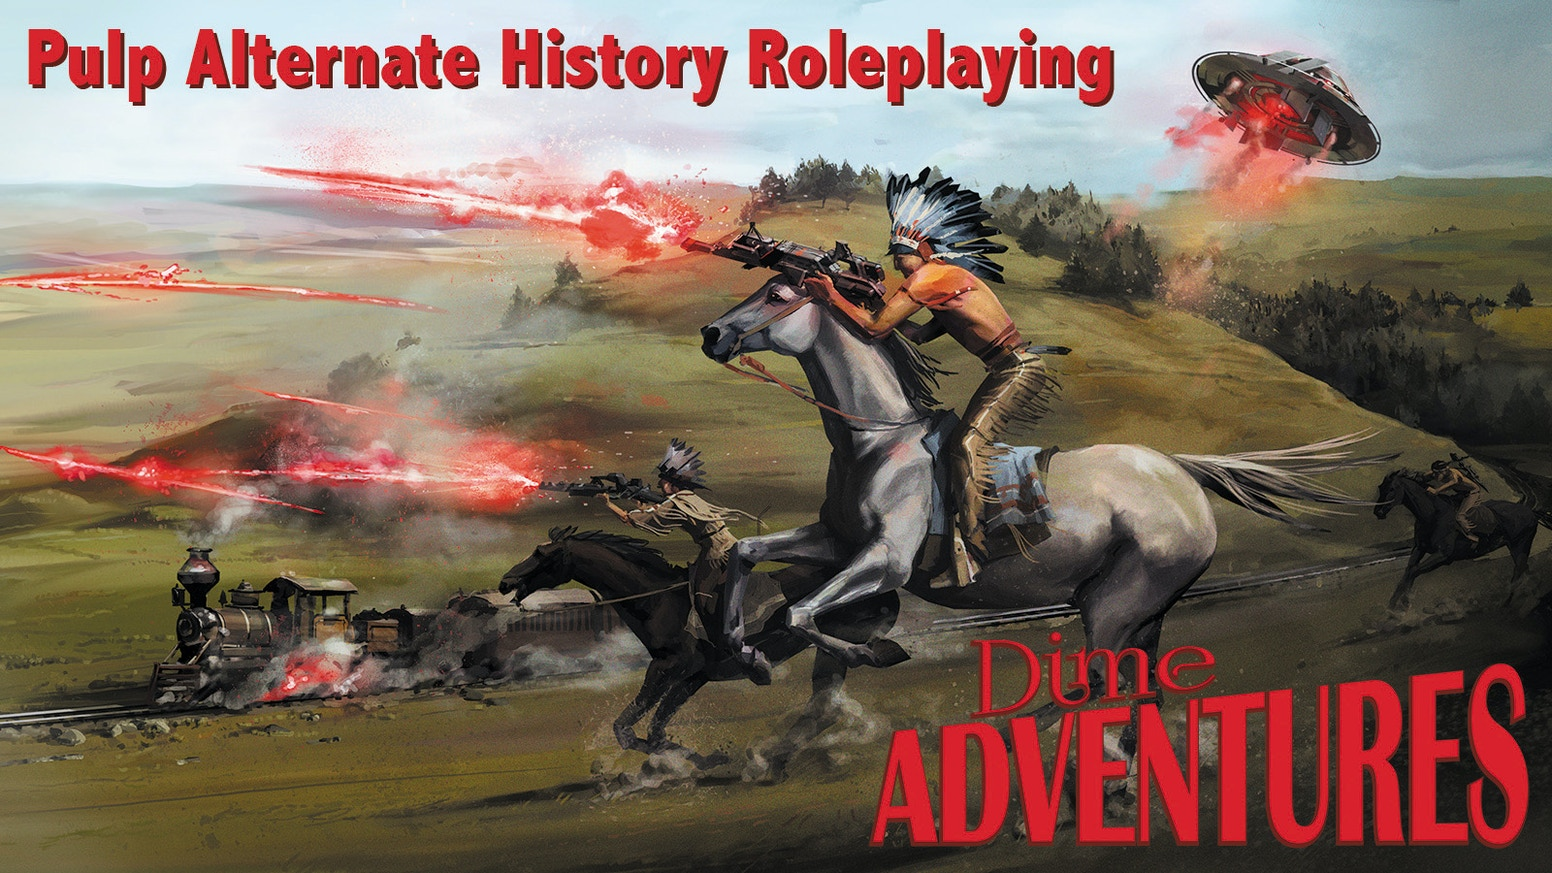 Dime Adventures is a complete roleplaying game that brings the excitement of pulp action to a thrilling world of alternate history.